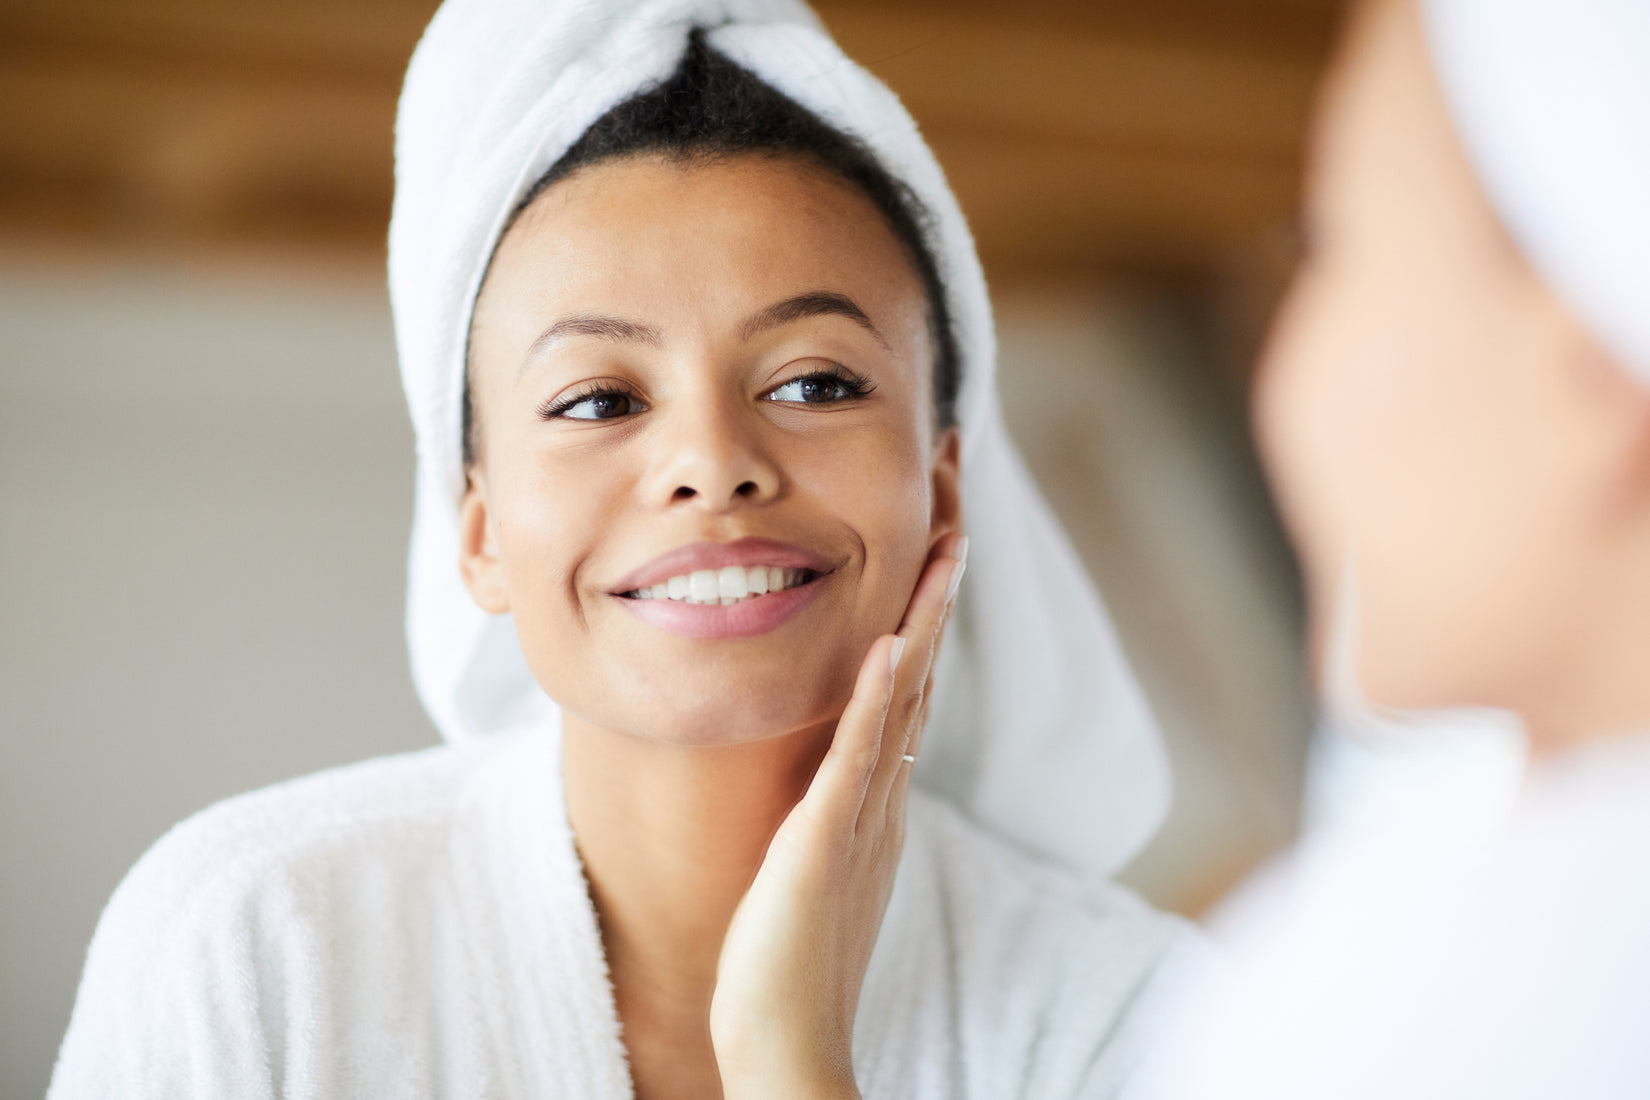 Treat Yourself | 5 At-Home Beauty Treatments